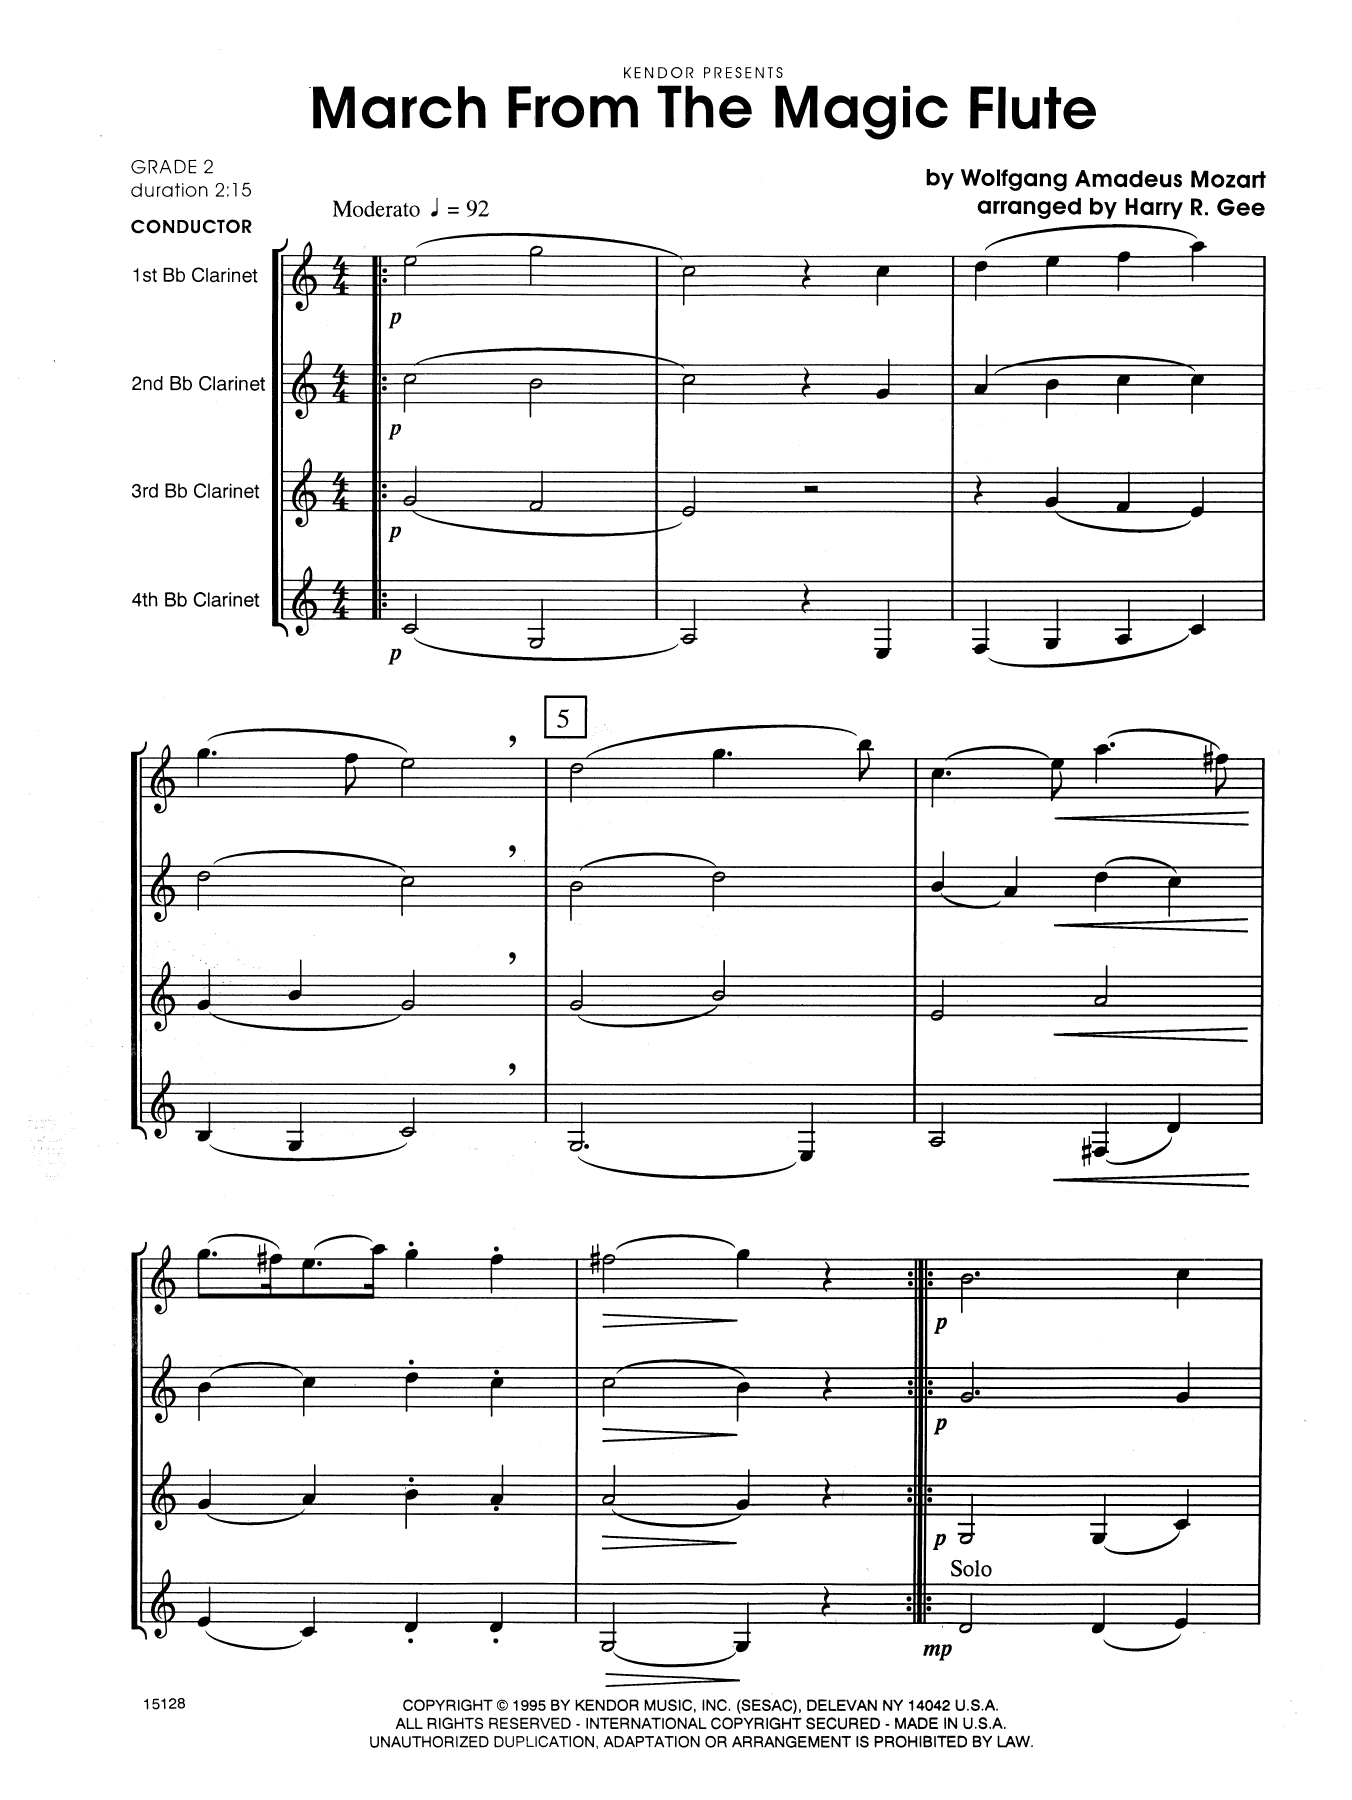 March From The Magic Flute (COMPLETE) sheet music for four clarinets by Harry R. Gee and Wolfgang Amadeus Mozart. Score Image Preview.